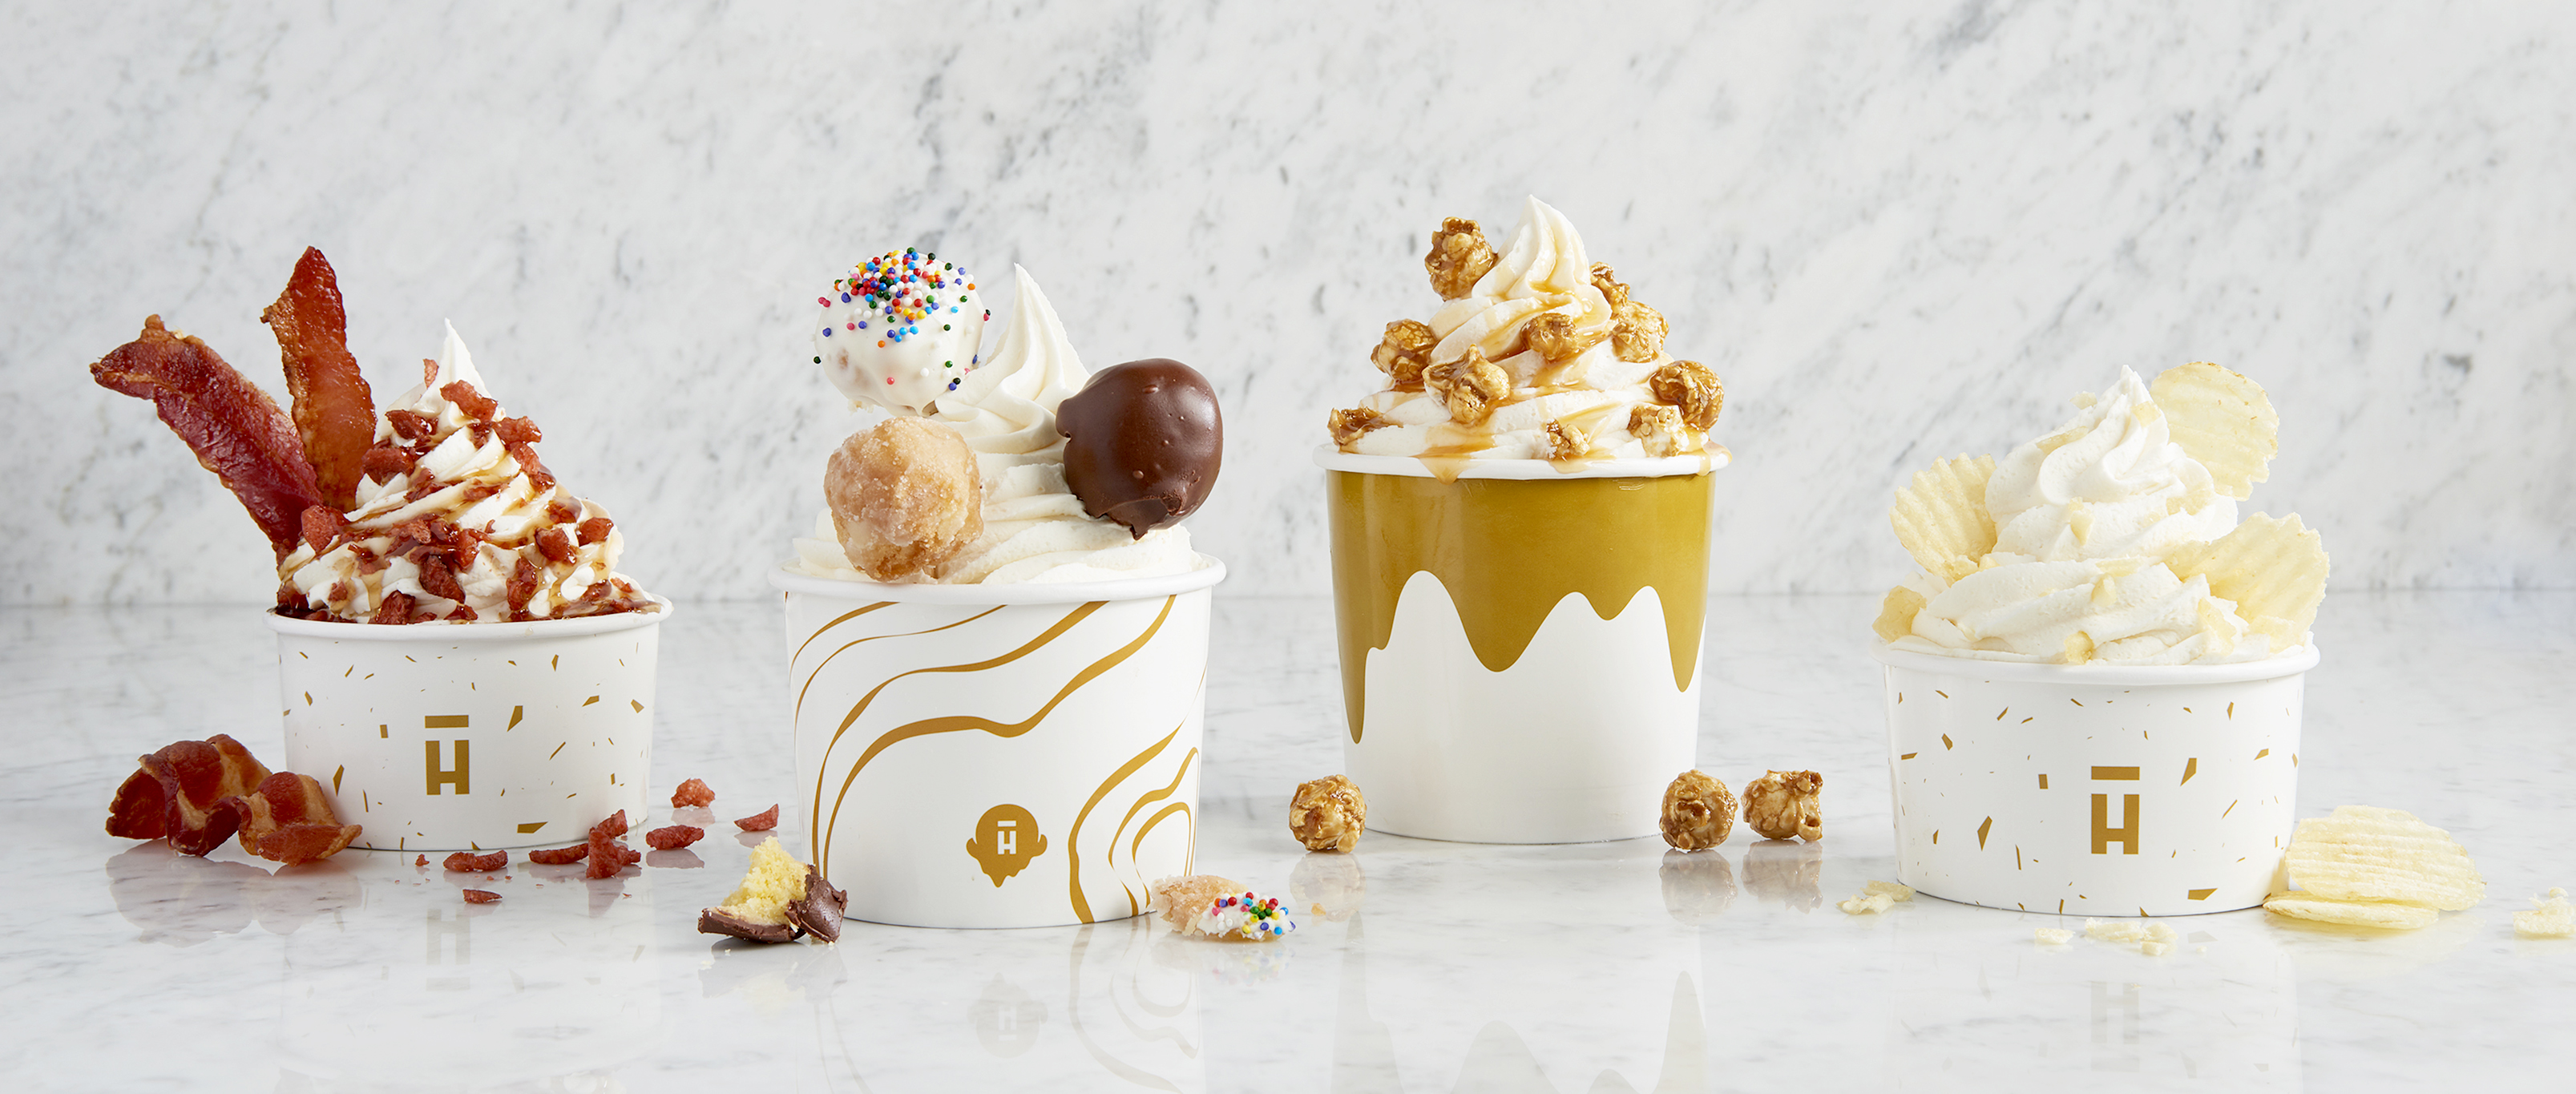 Halo Top Arrives At The Grove And Is Giving Out Free Ice Cream To Celebrate